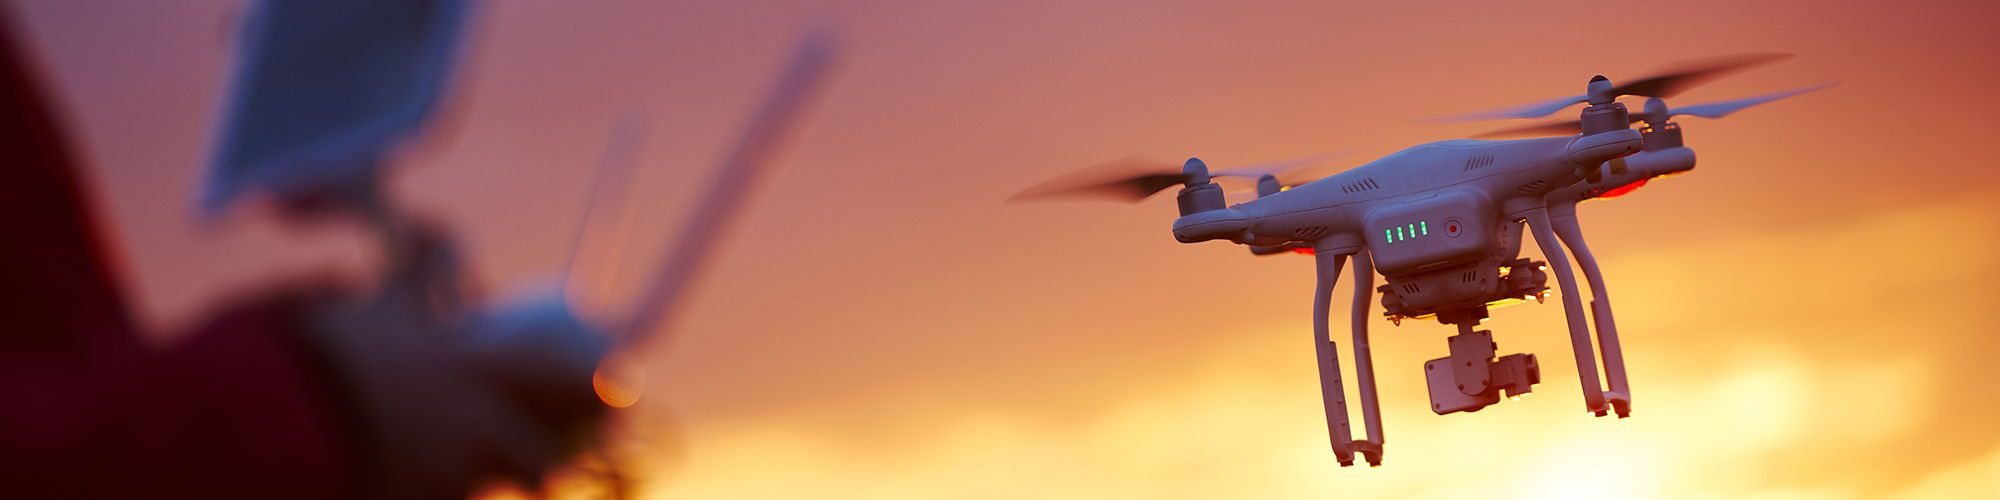 Drone in flight against sunset background